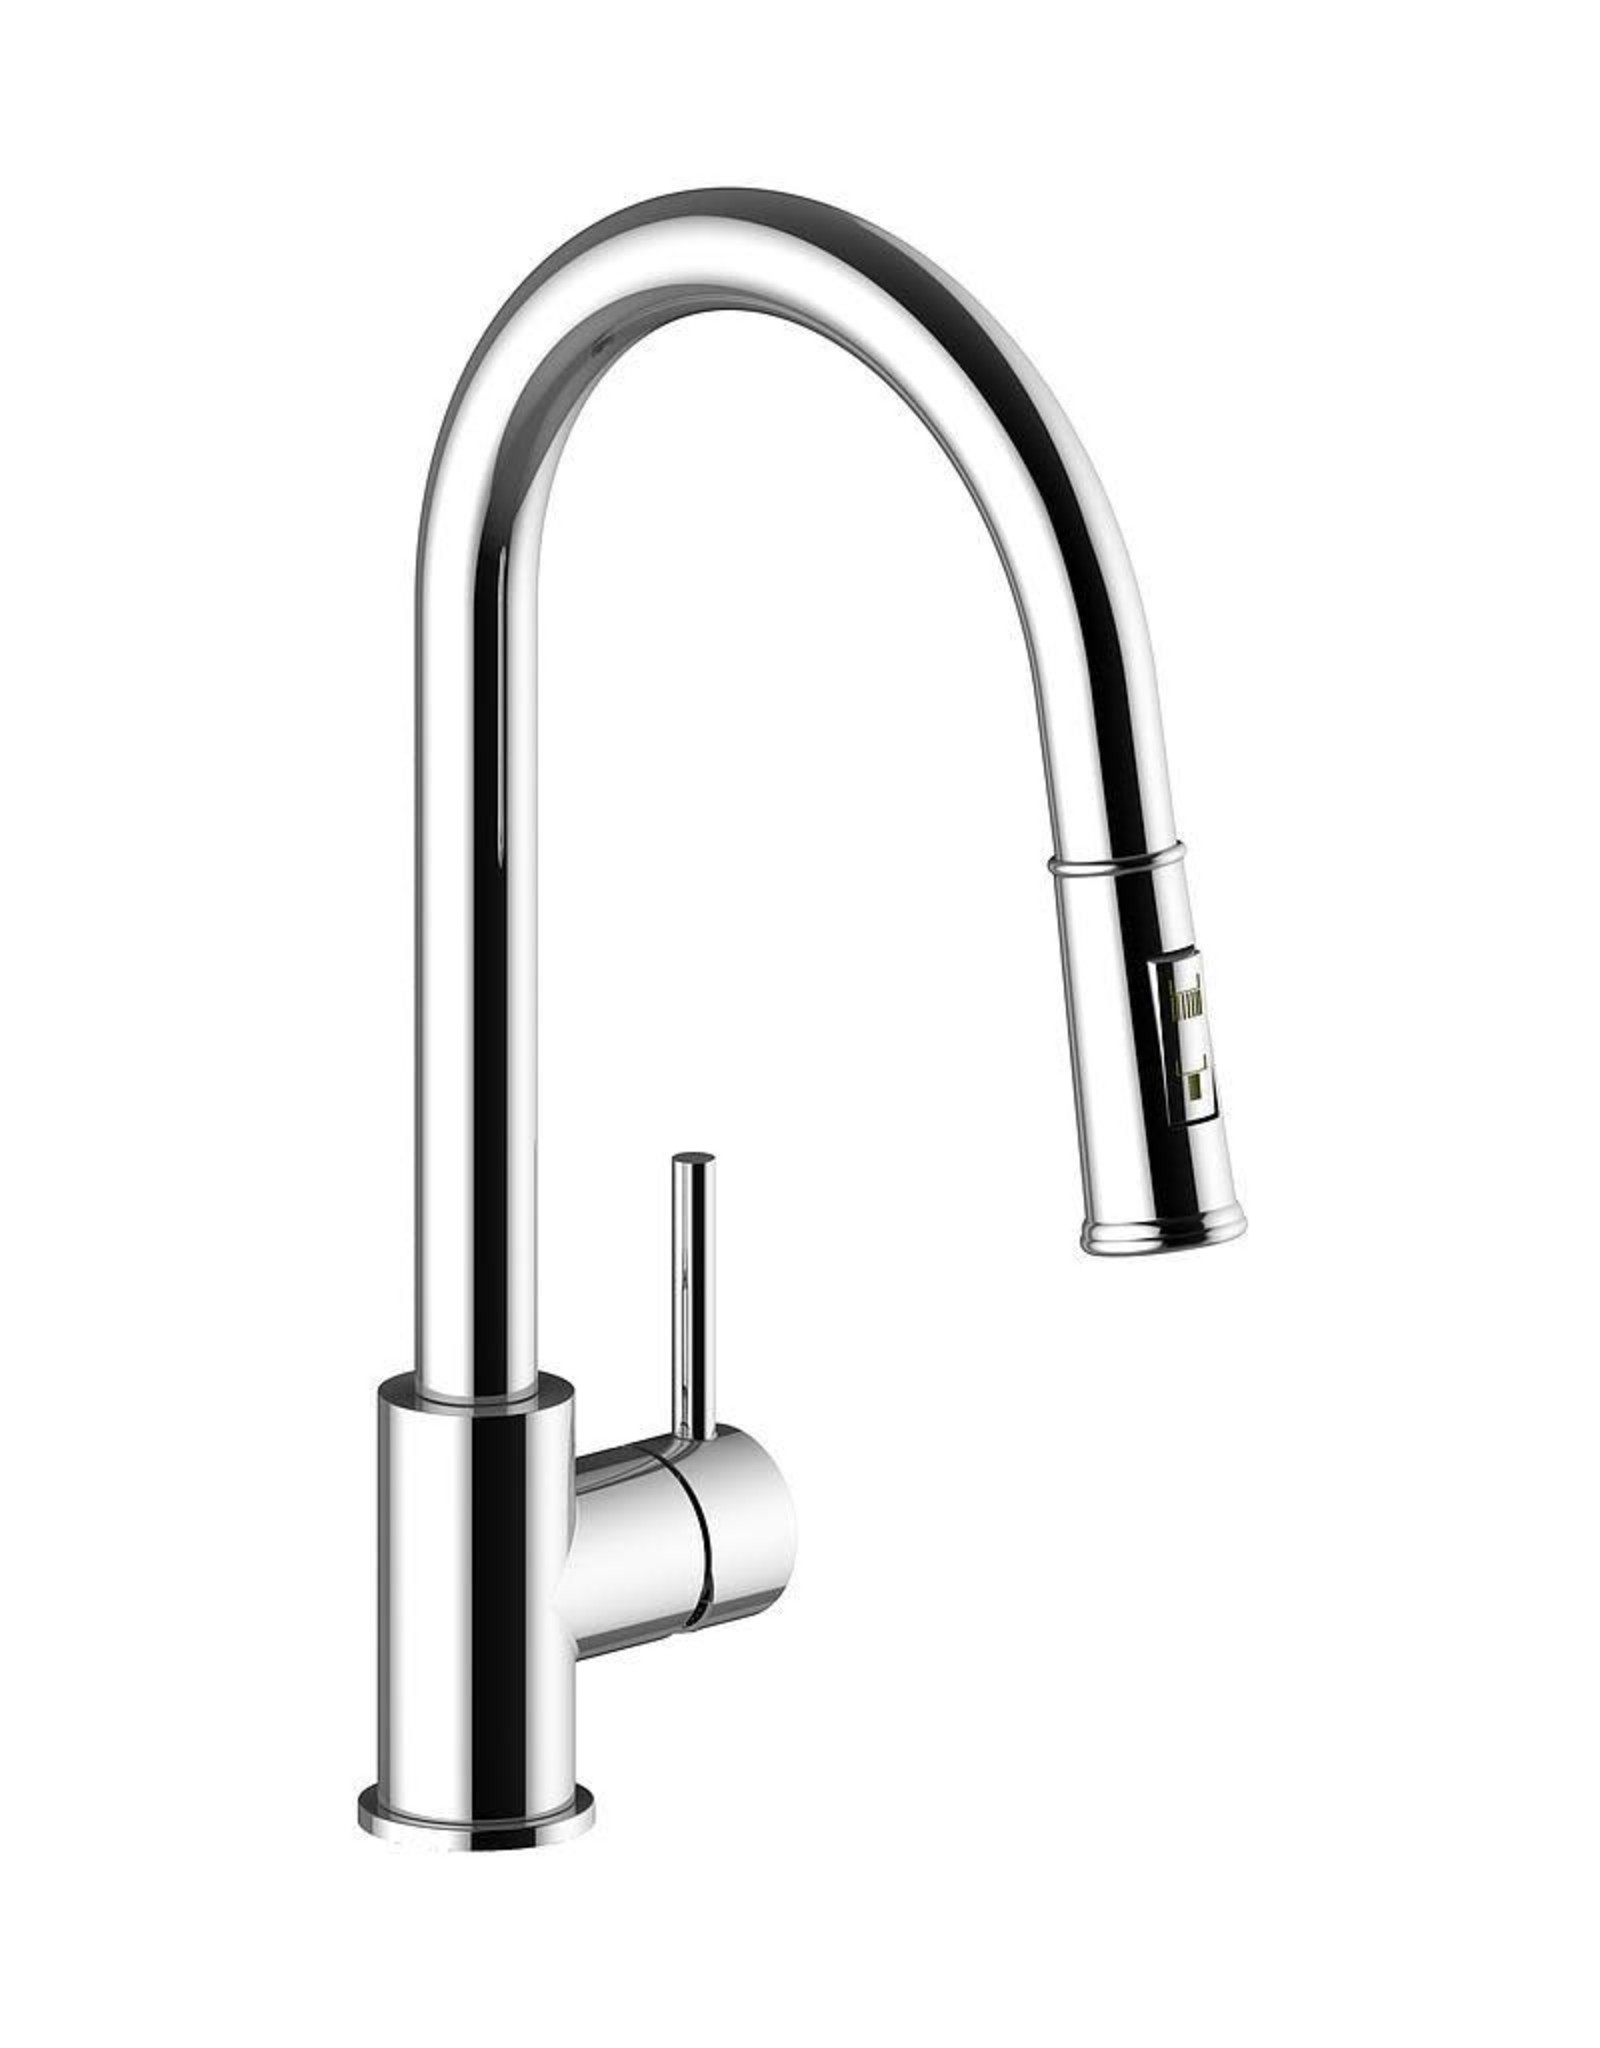 Vogt VOGT TRAUN D- KITCHEN FAUCET WITH 2-FUNCTION PULL-DOWN SPRAY